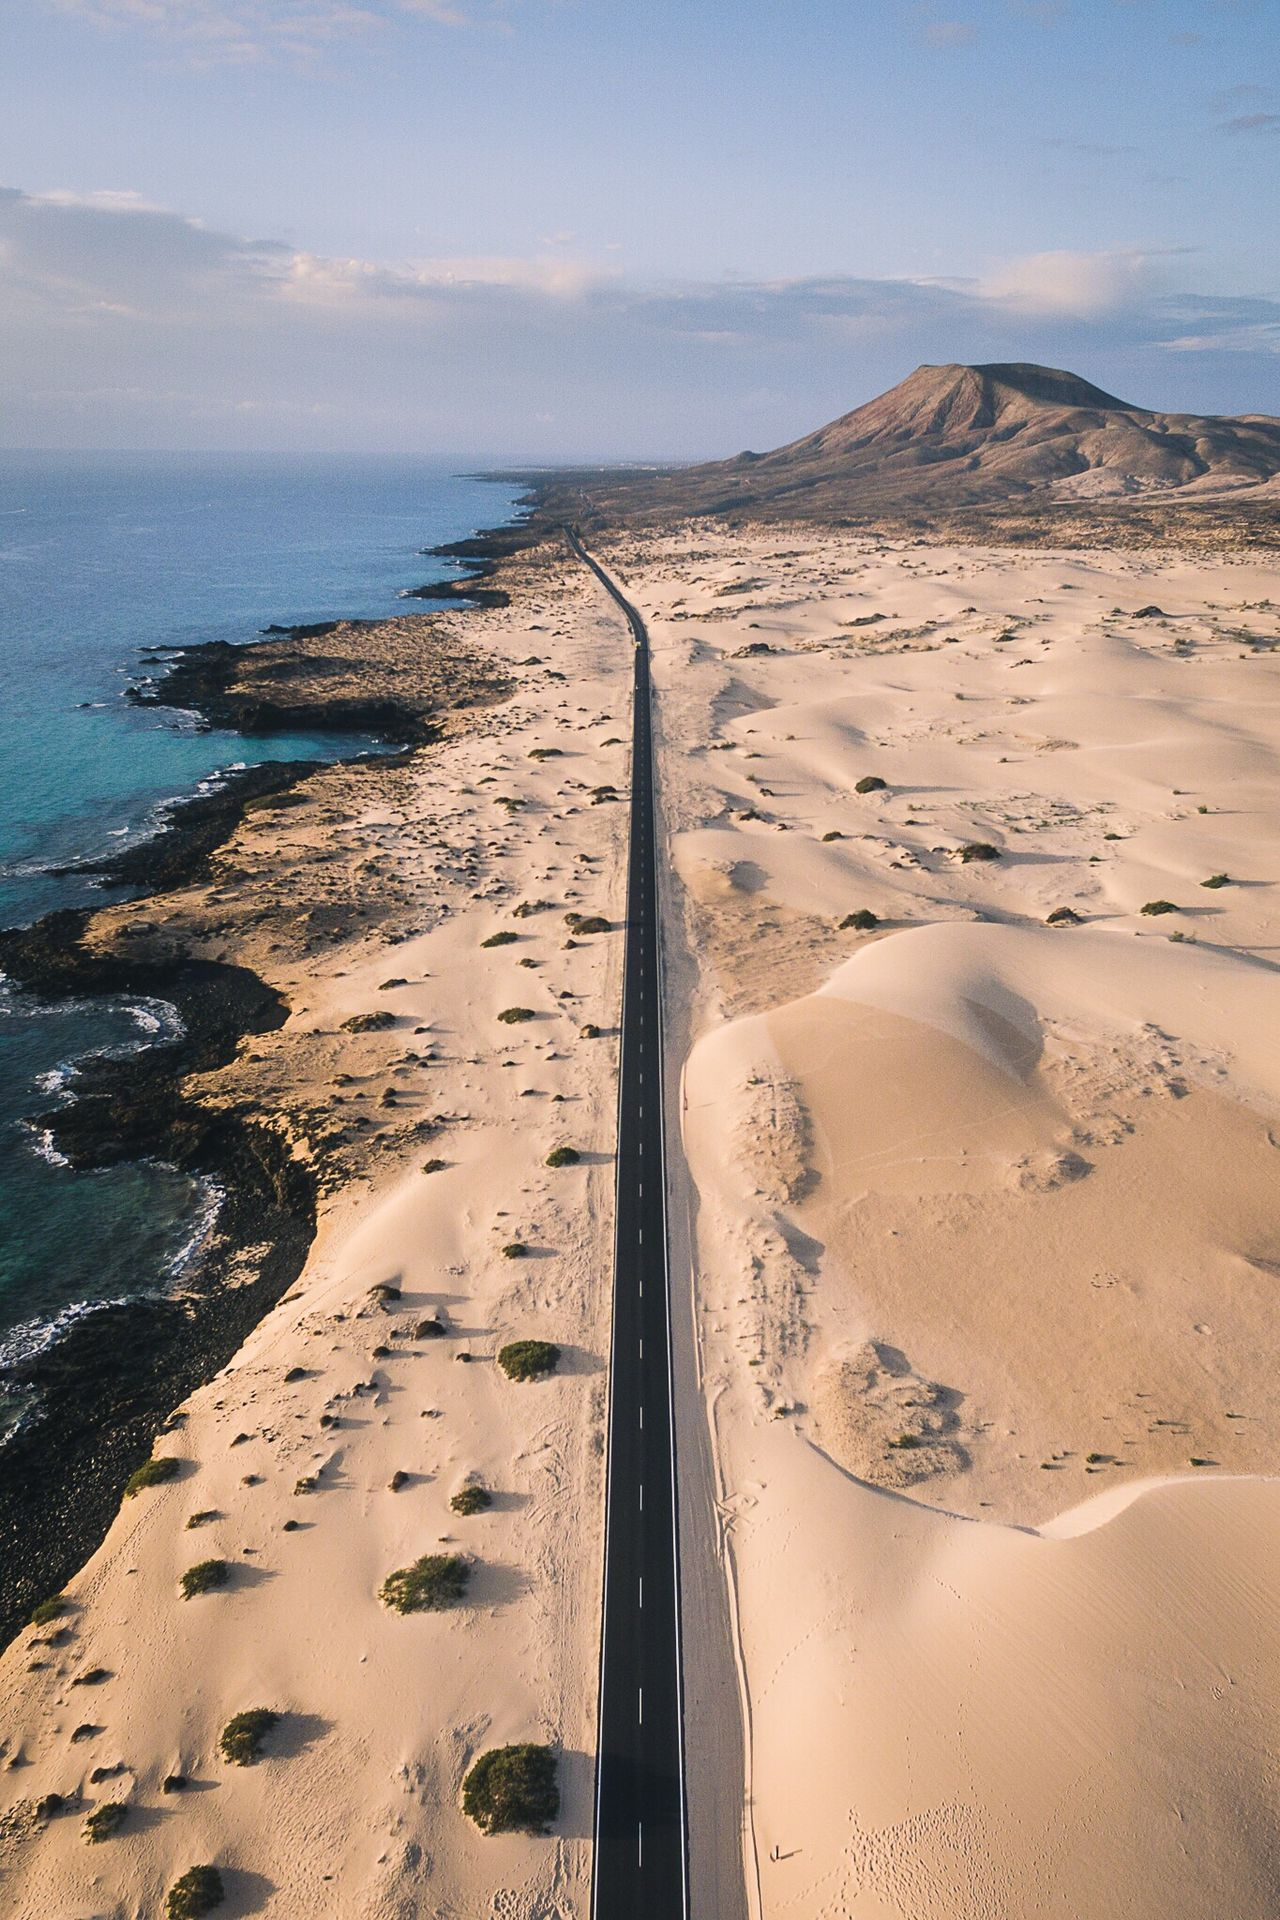 Nature Scenics Beauty In Nature Sand Aerial View Water Sky Outdoors Sand Dune Beach Landscape Dronephotography Drone  Aerial Shot Aerial Photography Ocean Road Fuerteventura Check This Out OpenEdit EyeEm Best Shots EyeEm Nature Lover EyeEm Gallery Market Photography Fresh On Market 2016